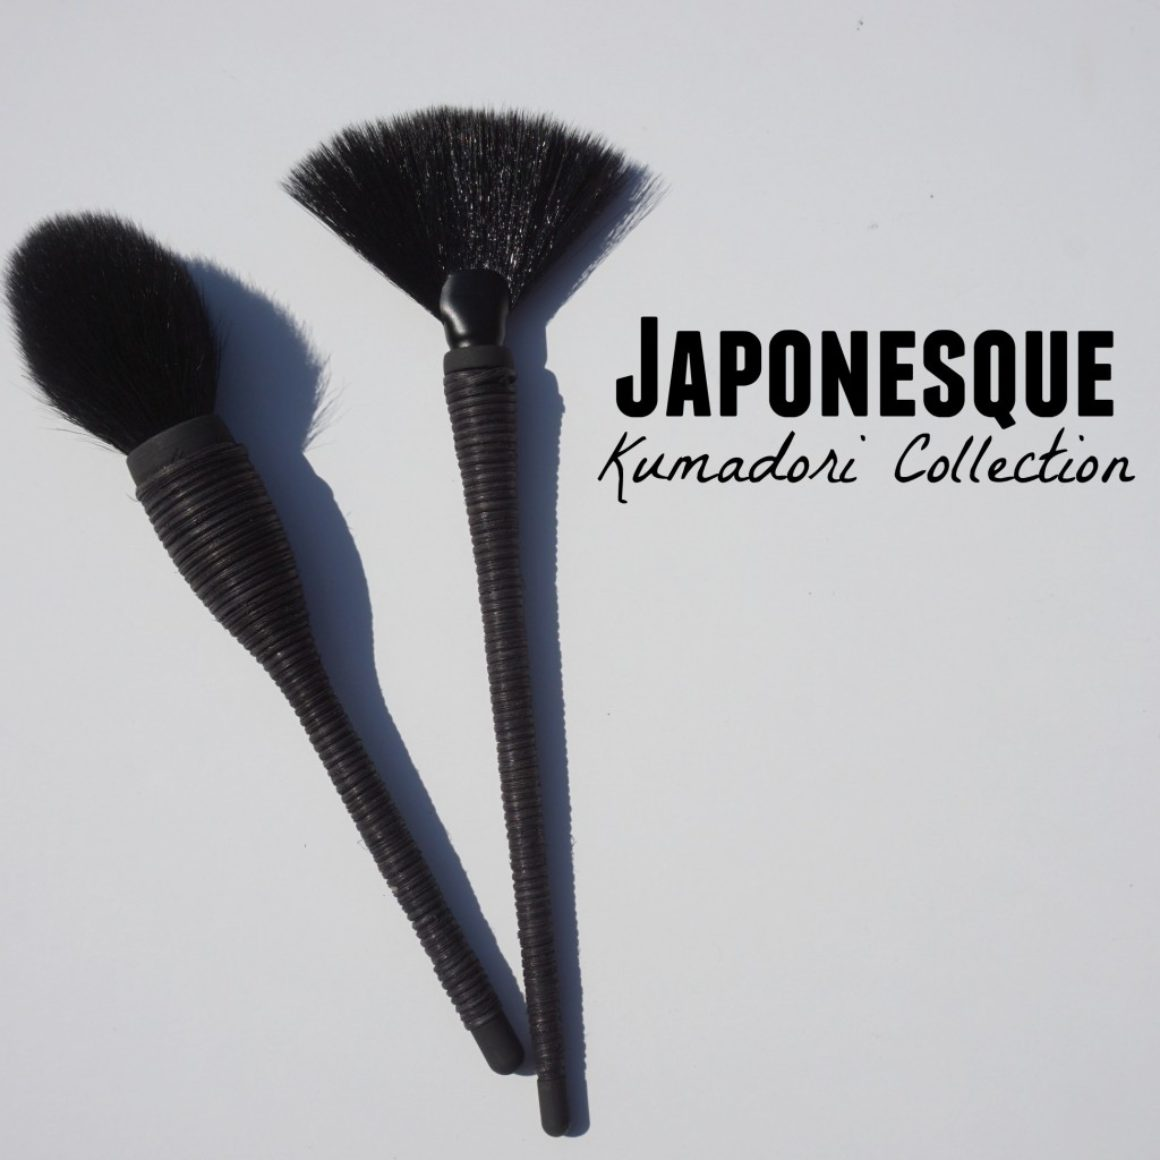 Highlight like a Pro with Japonesque Kumadori Brush Collection